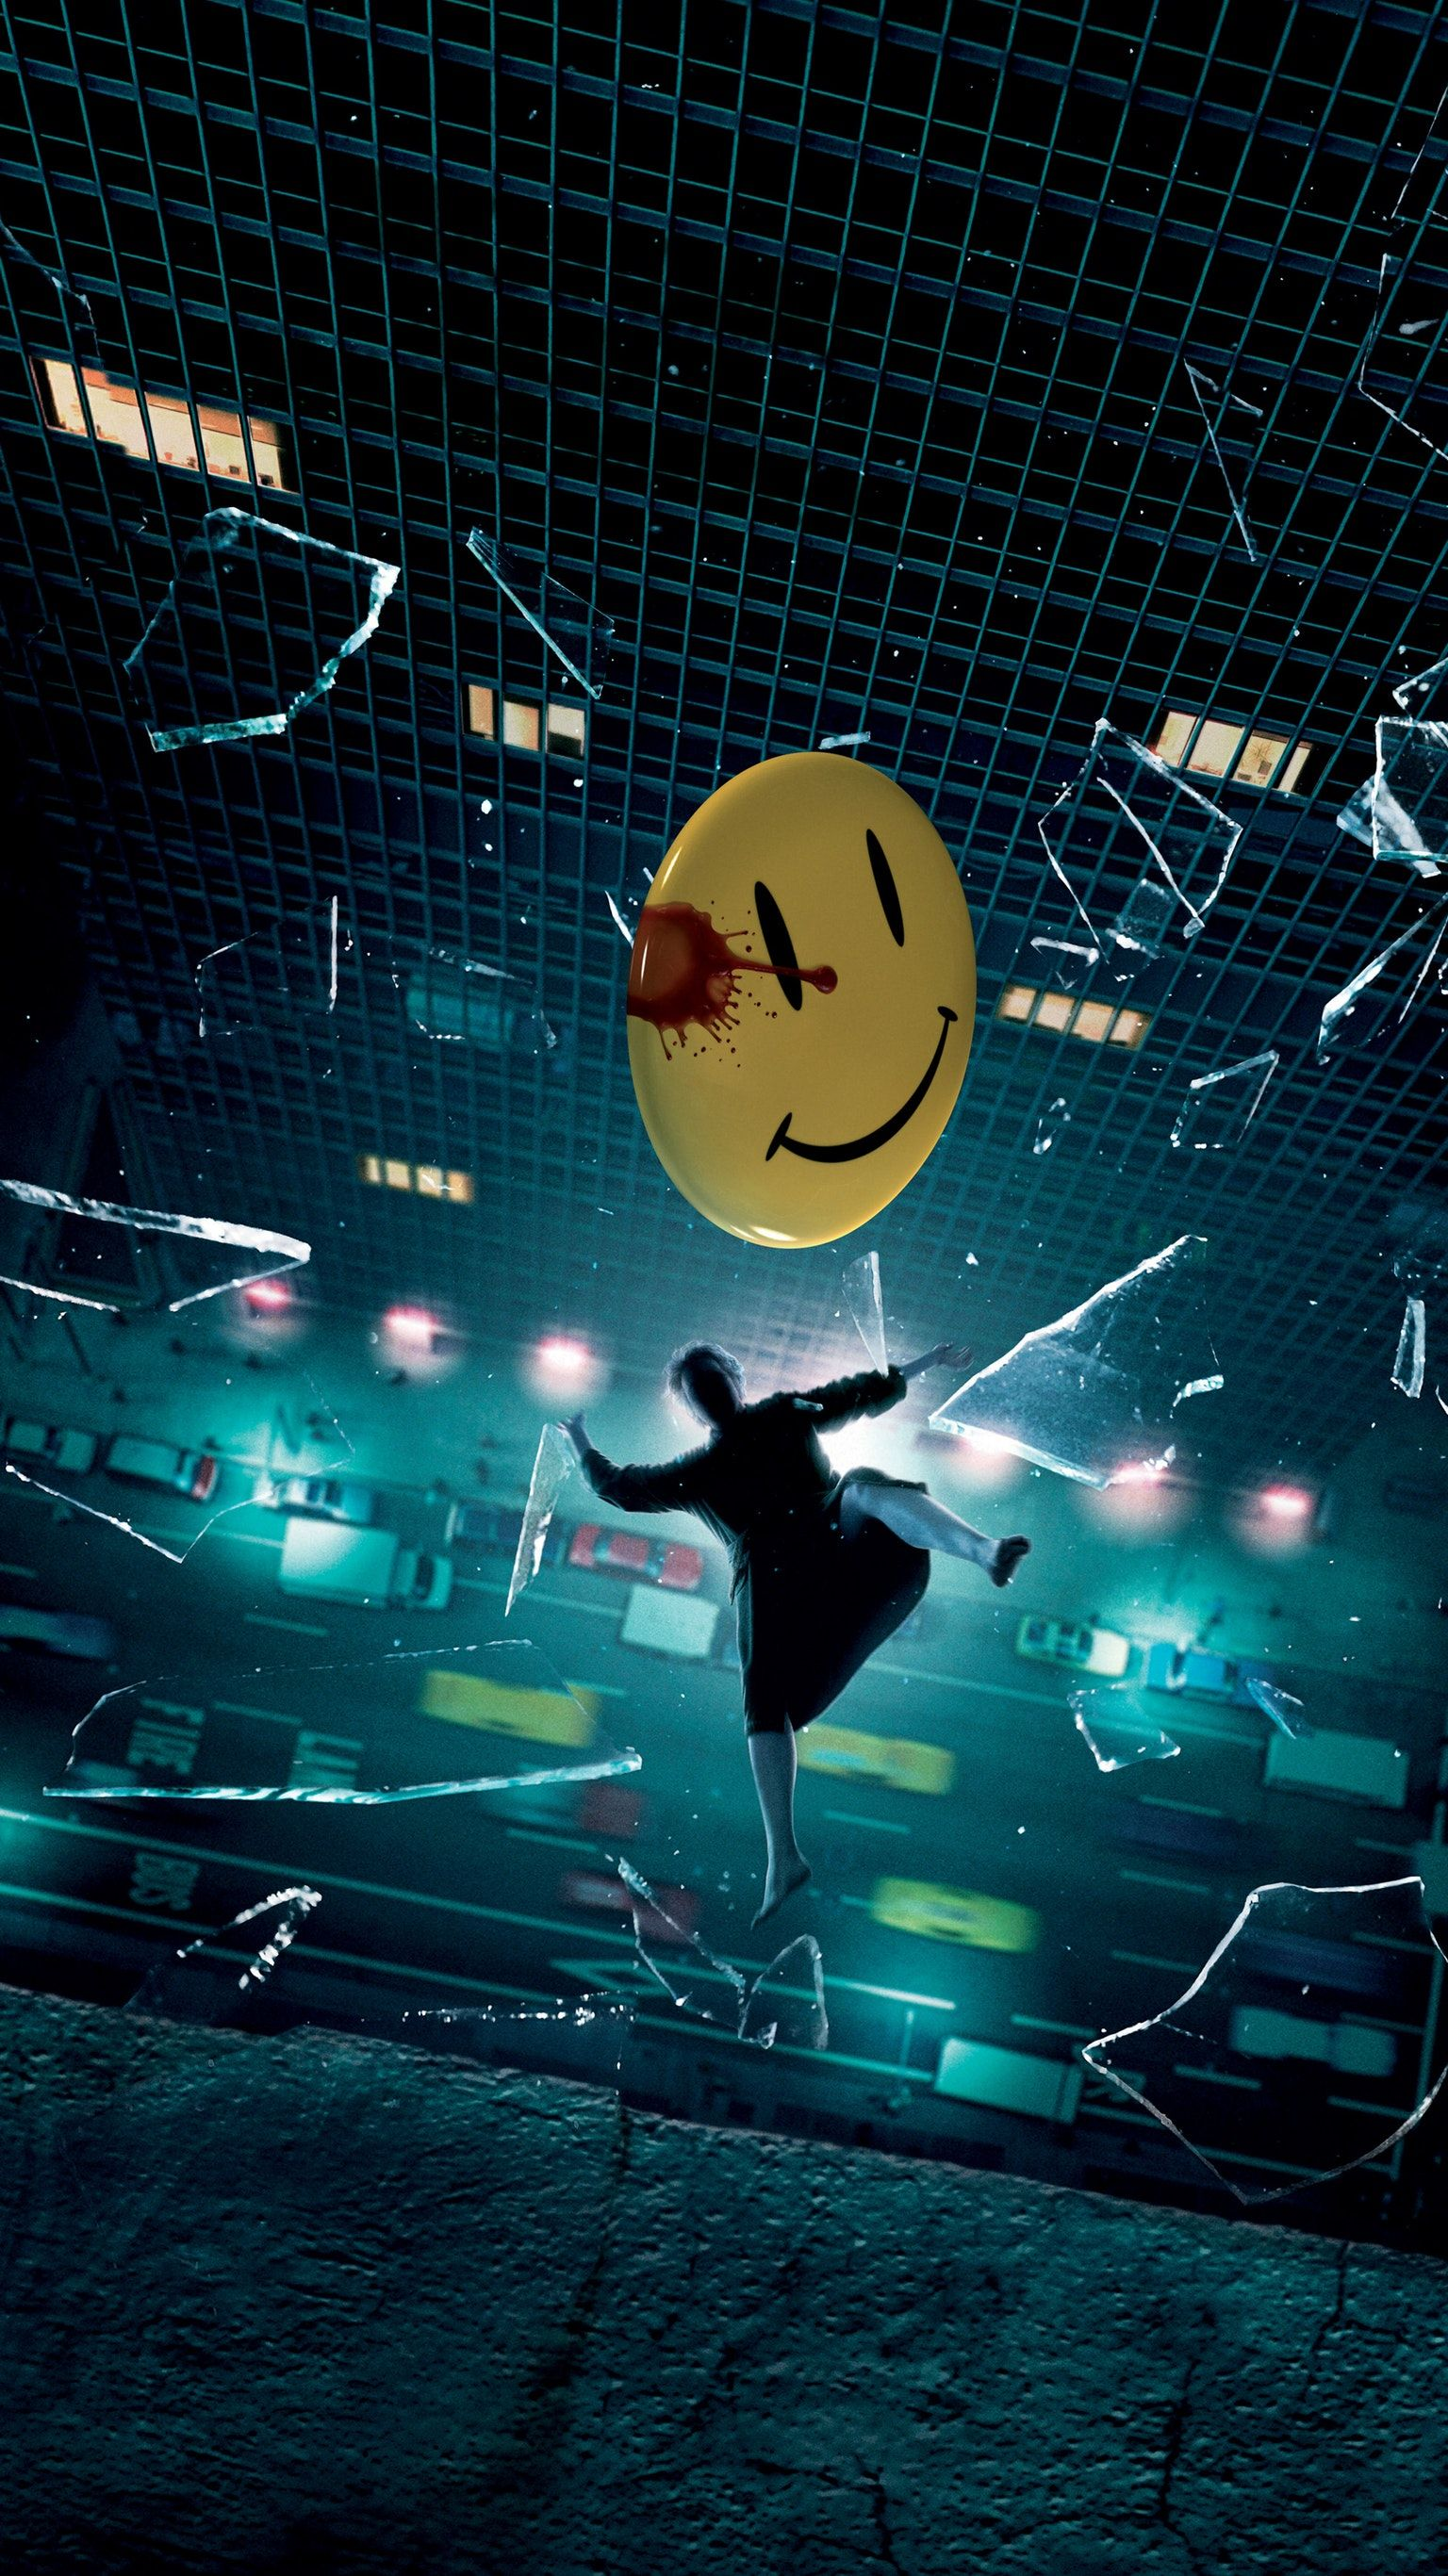 Watchmen 2009 Phone Wallpaper Moviemania Movie Posters Movie Wallpapers Watchmen